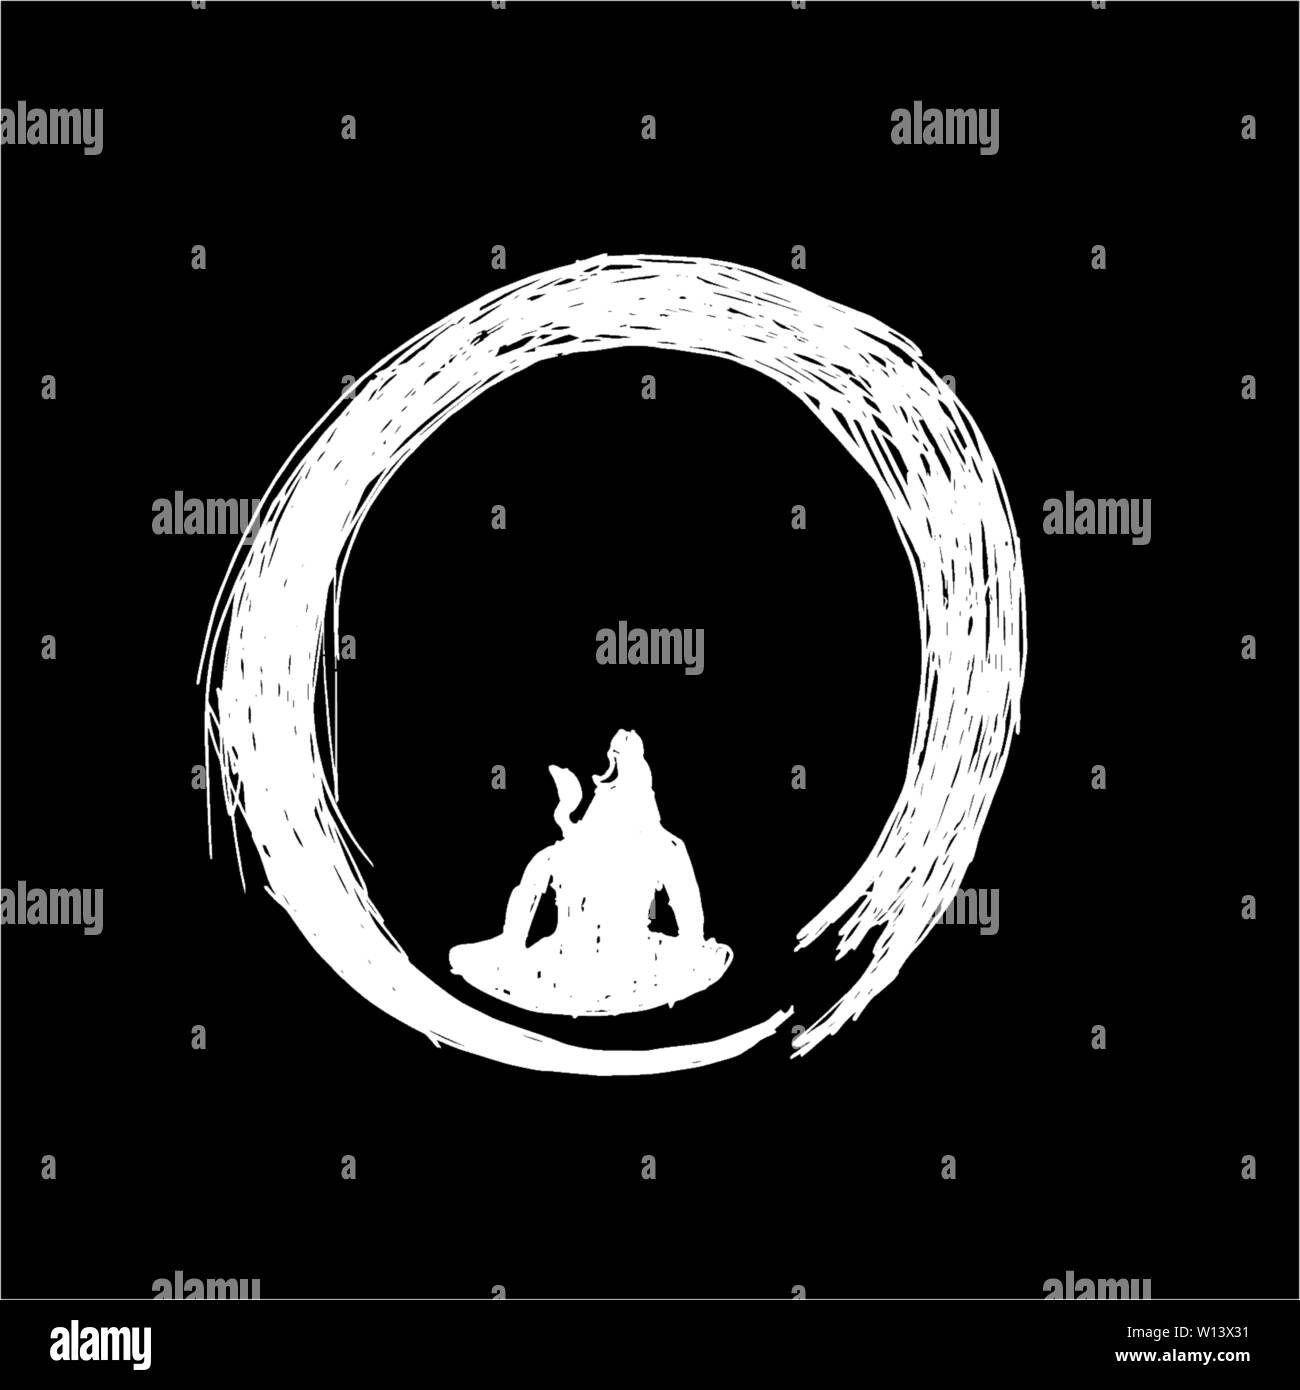 Black And White Illustration Of Shiva In A Circle Of Zen Tattoo Idea Stock Vector Image Art Alamy